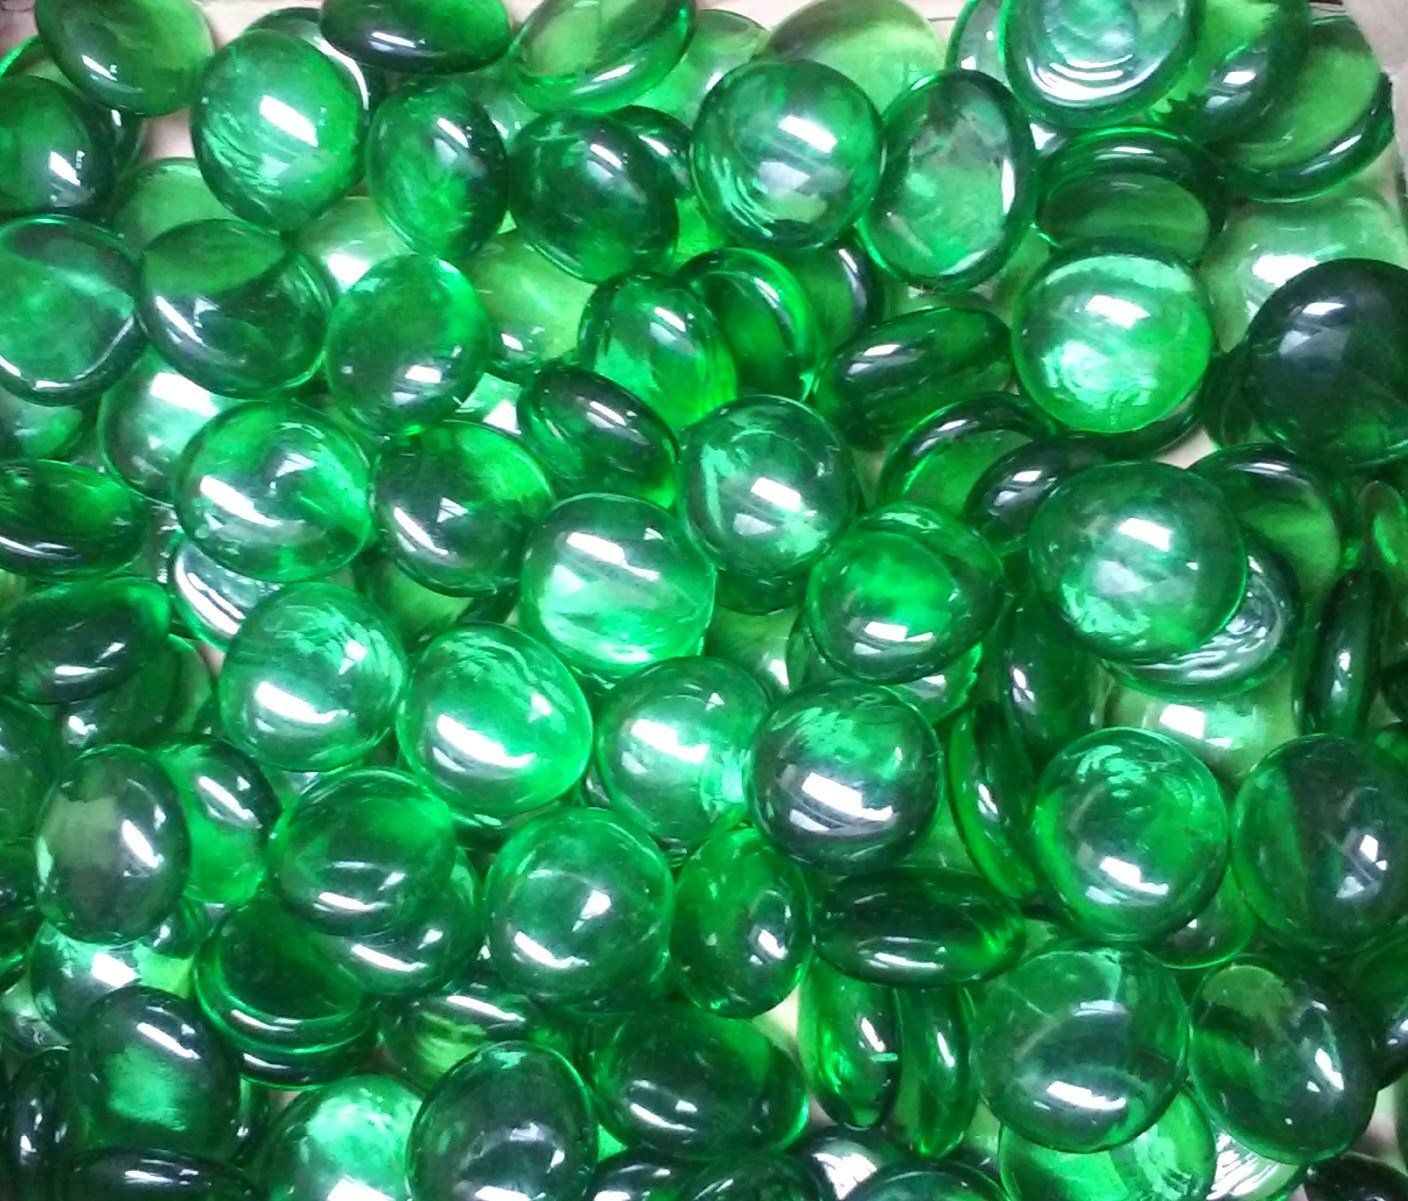 Miracolors 4 lb green glass gems vase fillers 17 19mm miracolors 4 lb green glass gems vase fillers 17 19mm reviewsmspy